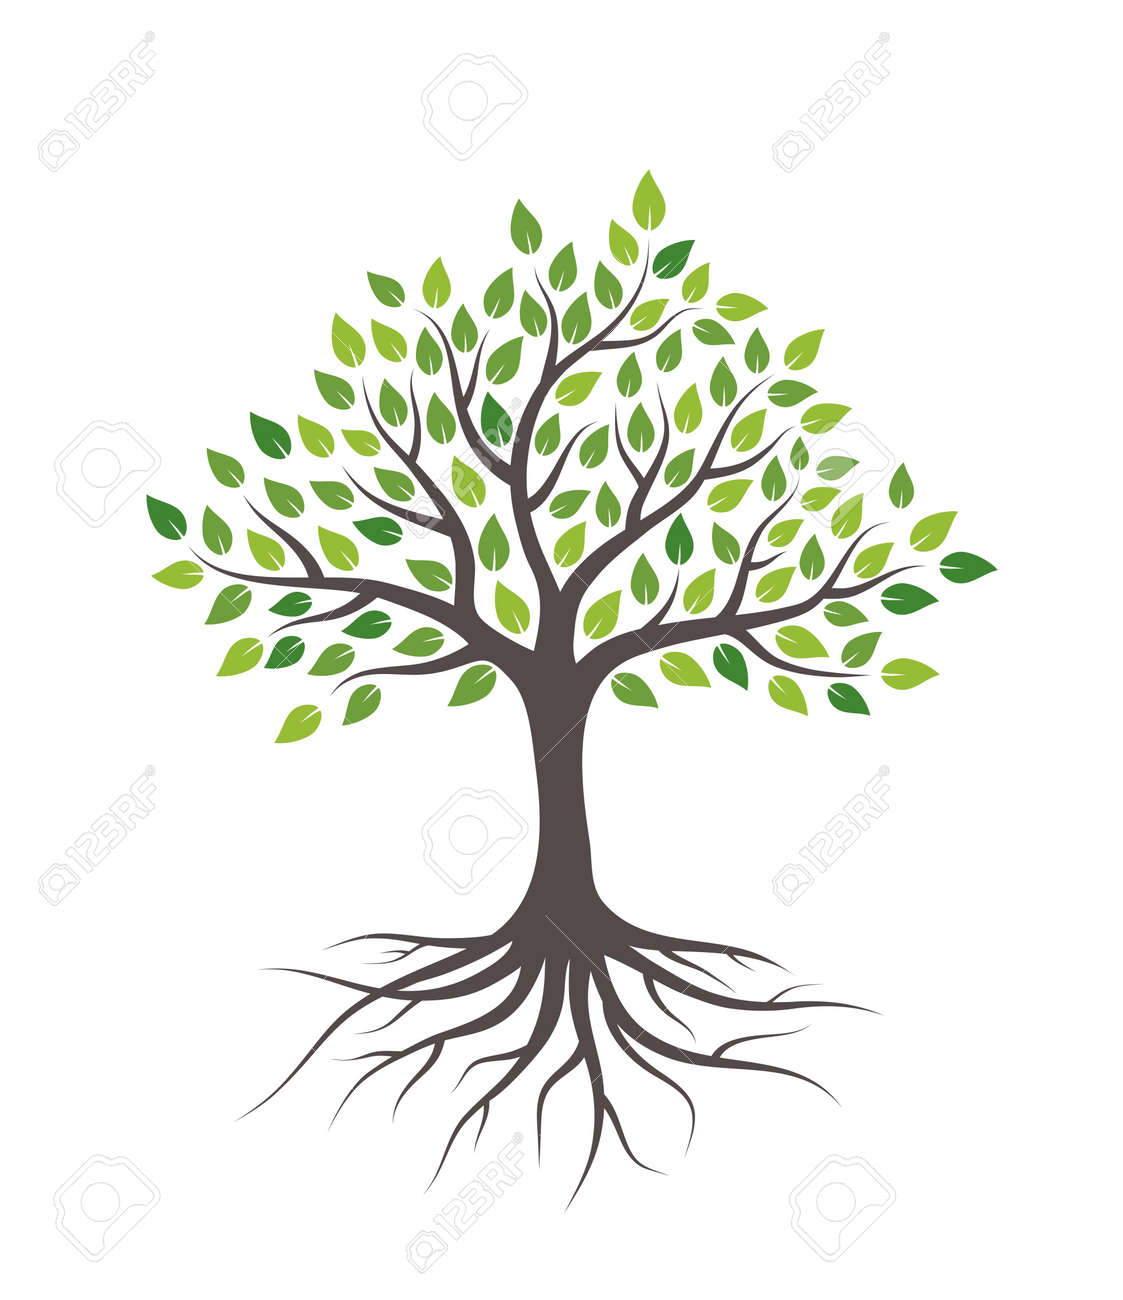 Tree with green leaves and roots. Isolated on white background. - 122587019